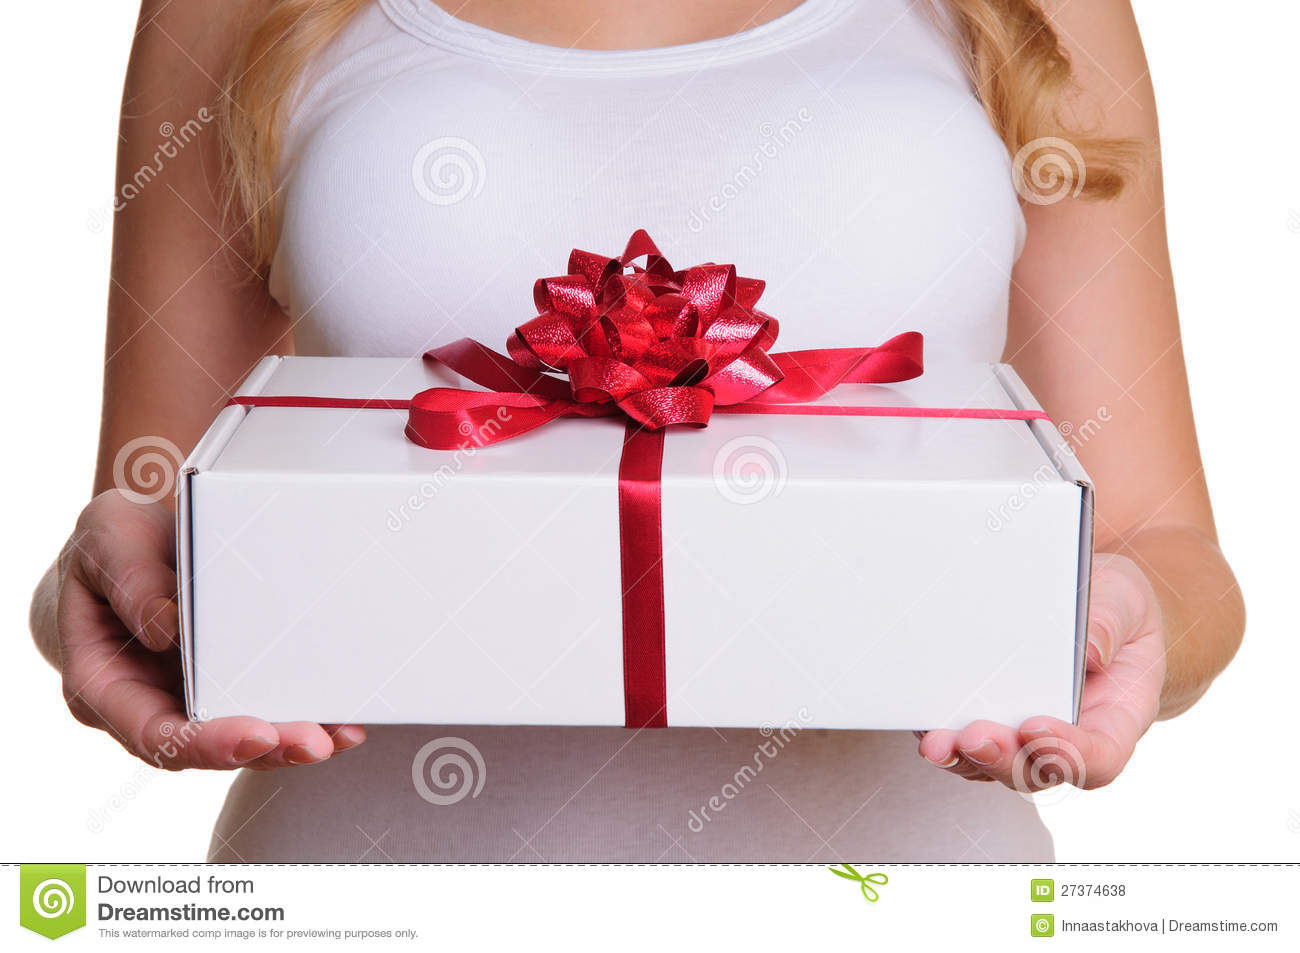 Hands holding gift box stock photo. Image of body, holding ...